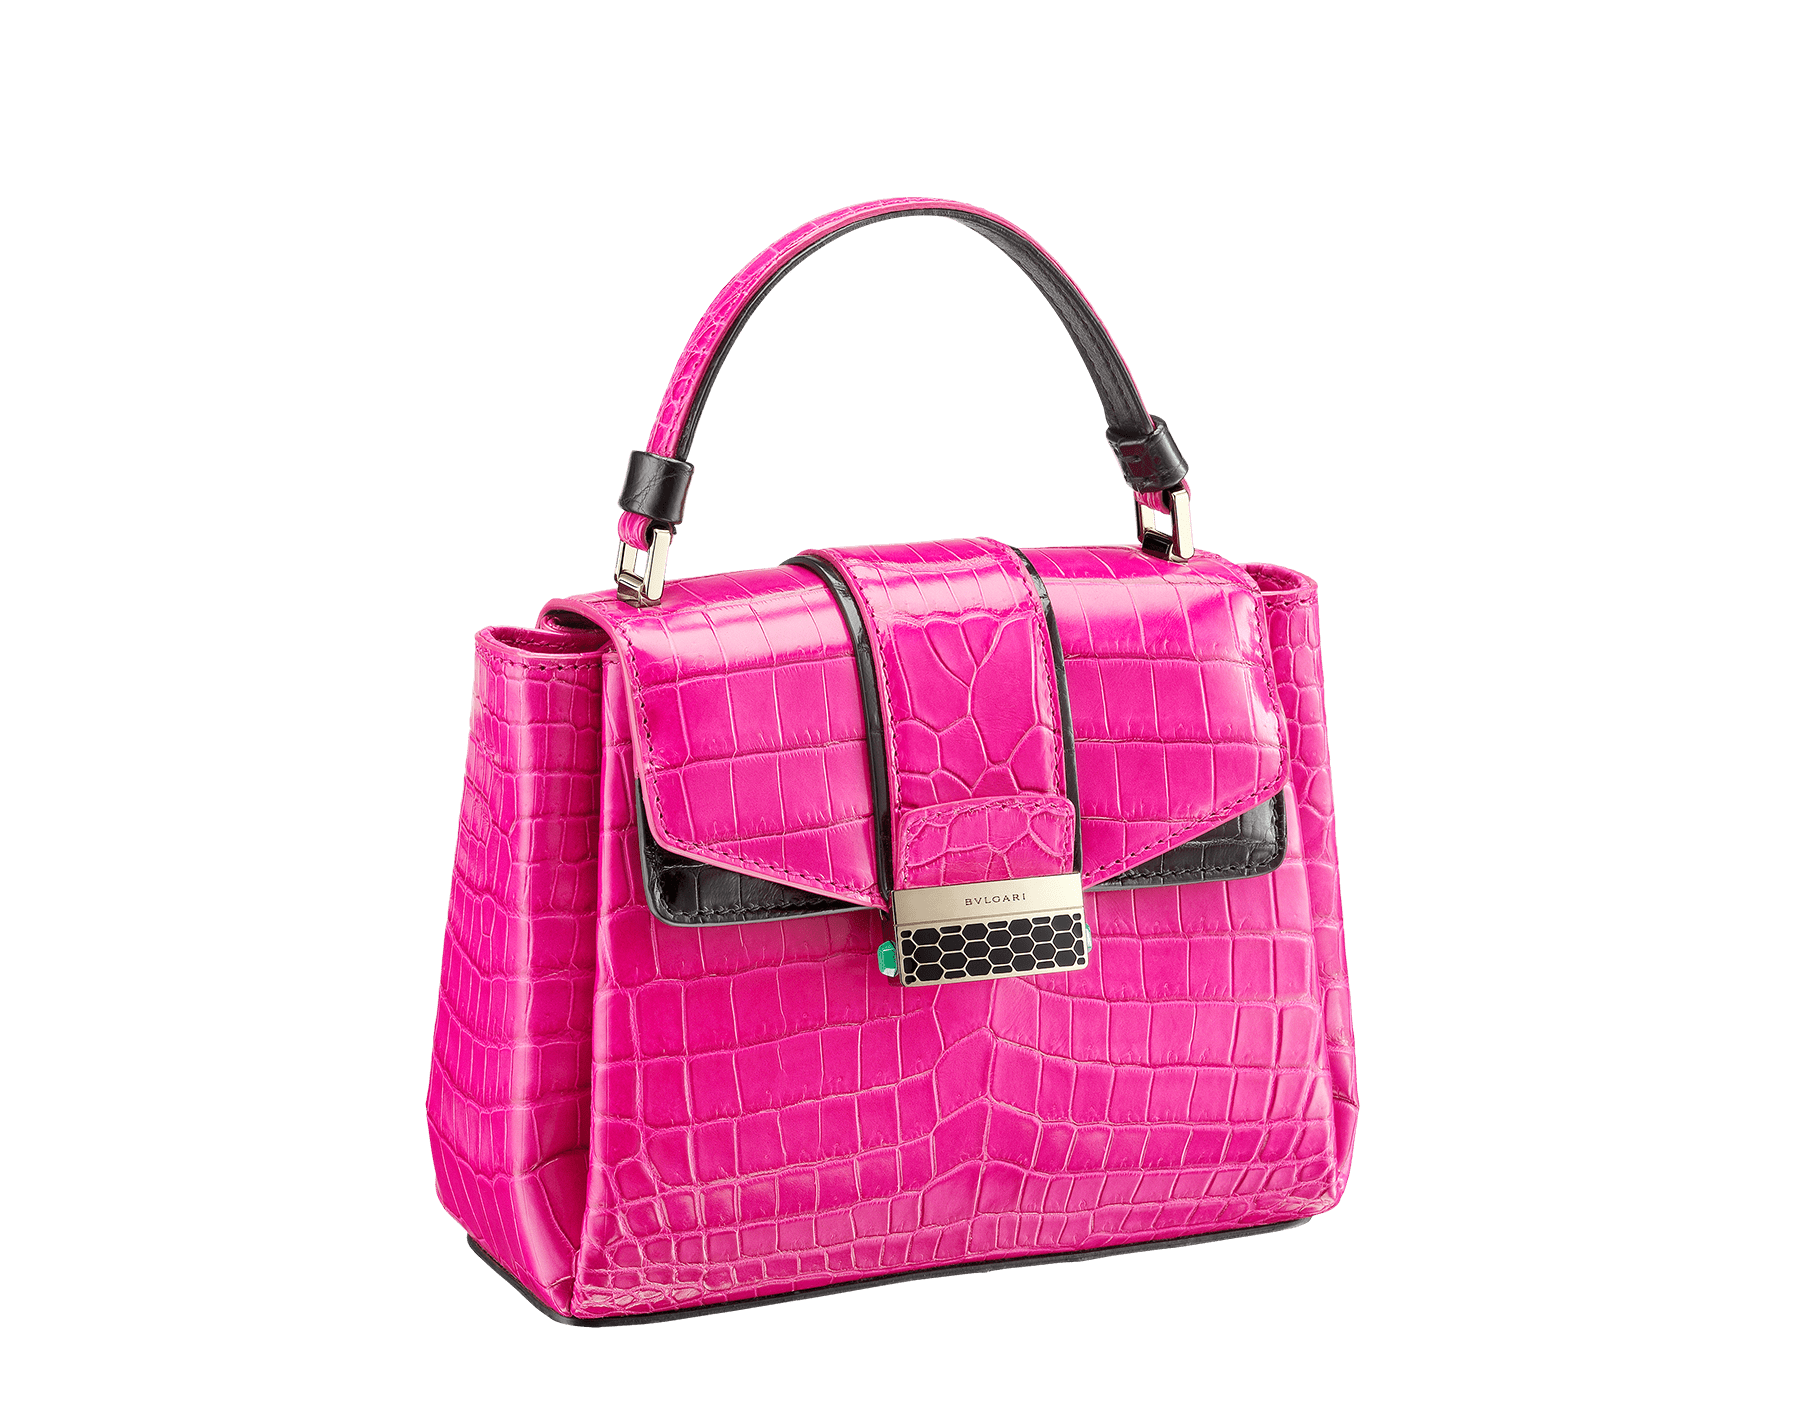 Top handle bag Serpenti Viper in pink spinel and black shiny crocodile skin. 282923 image 2